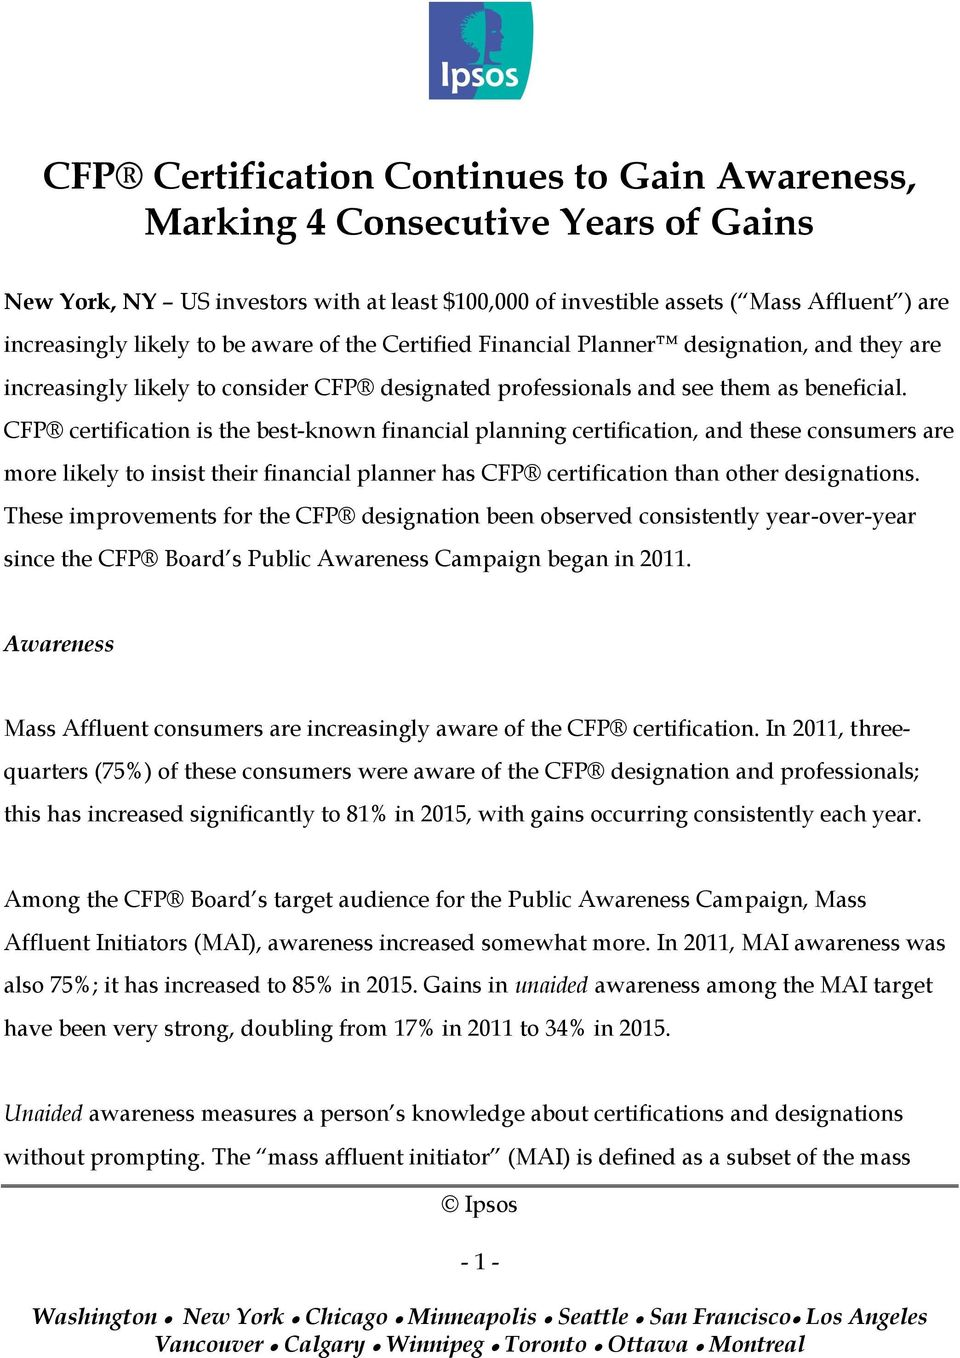 Cfp Certification Continues To Gain Awareness Marking 4 Consecutive